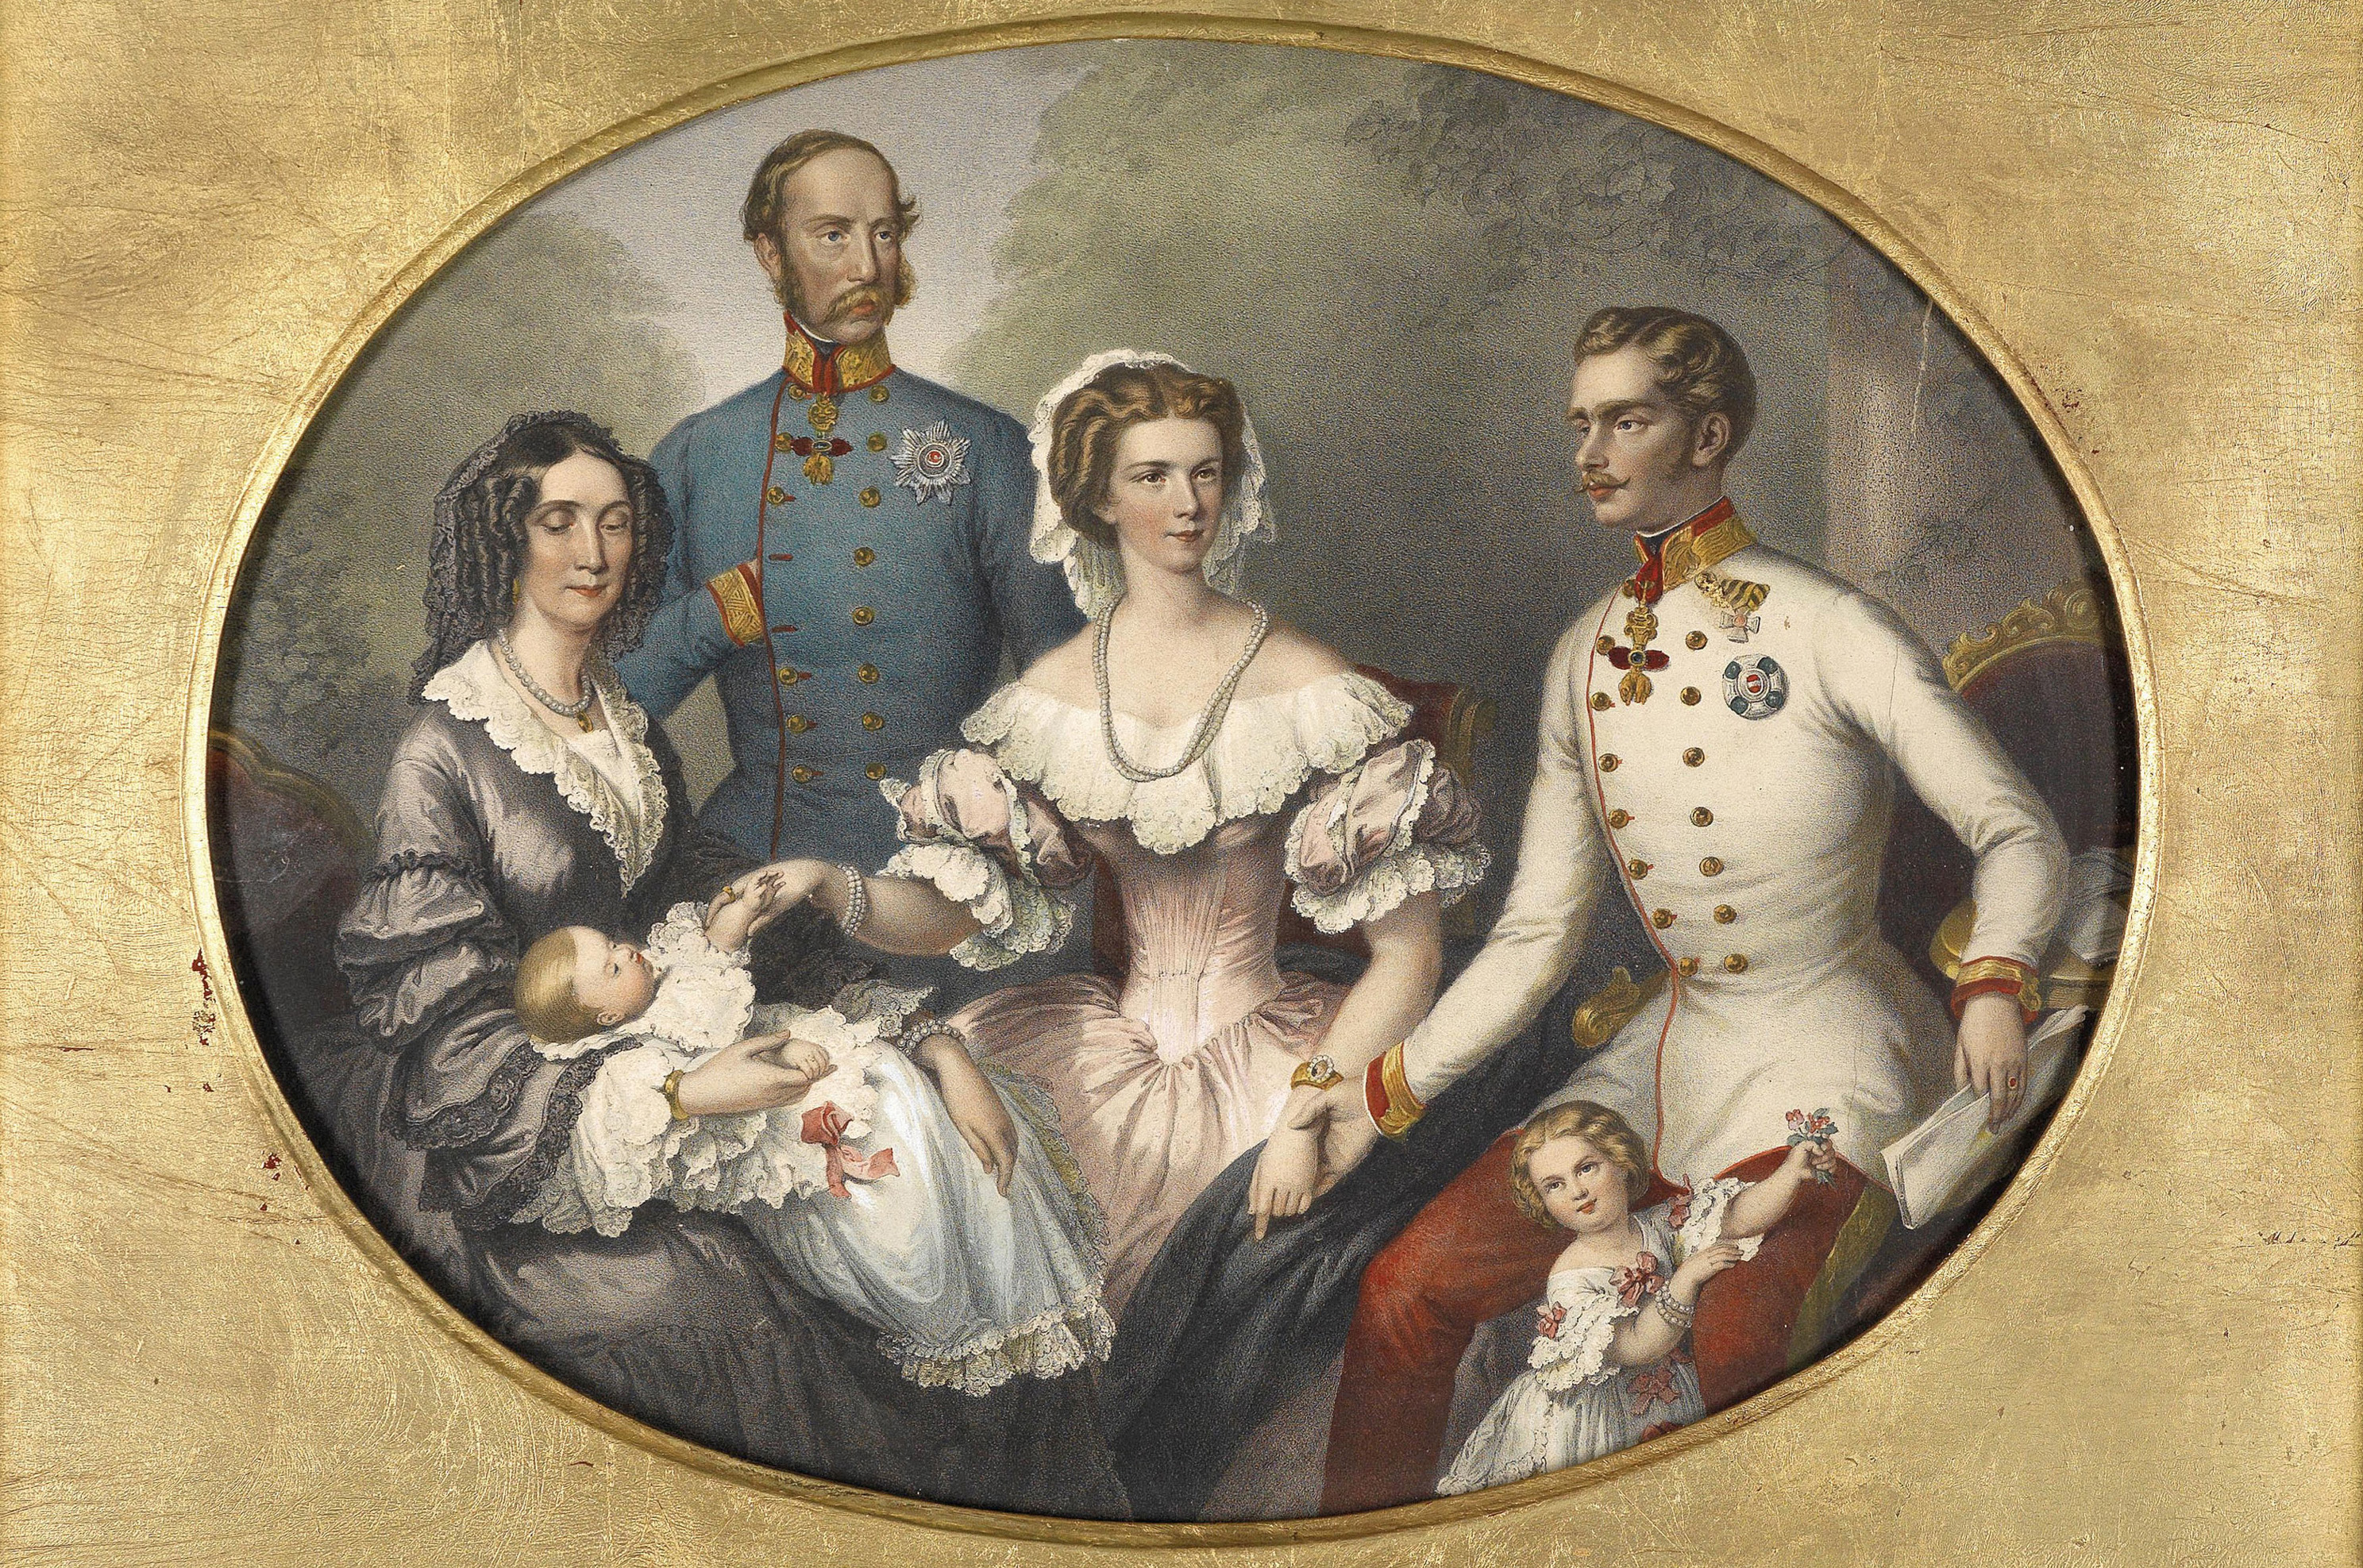 The Emperor family of Austria, circa 1856. (Credit: Fine Art Images/Heritage Images/Getty Images)